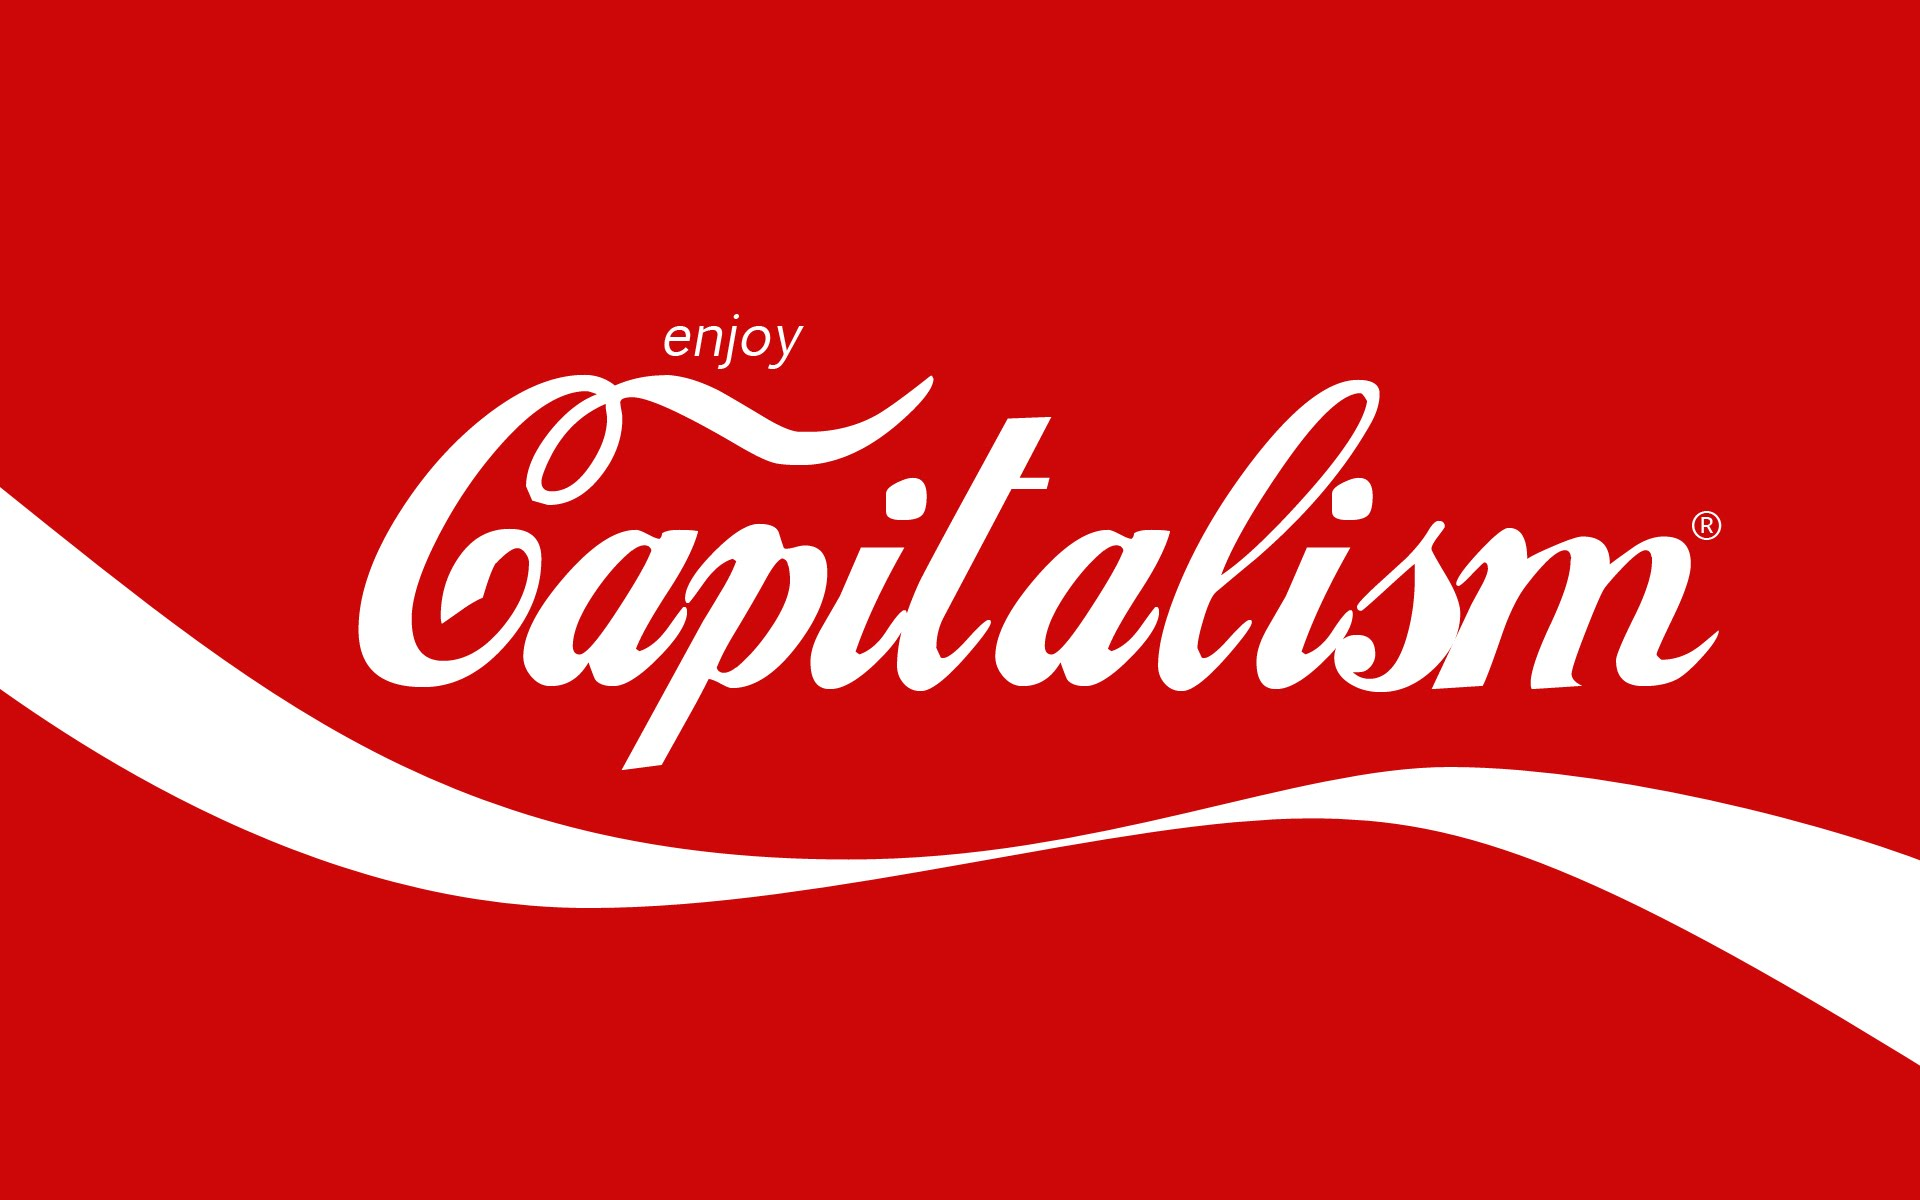 what are the features of capitalism